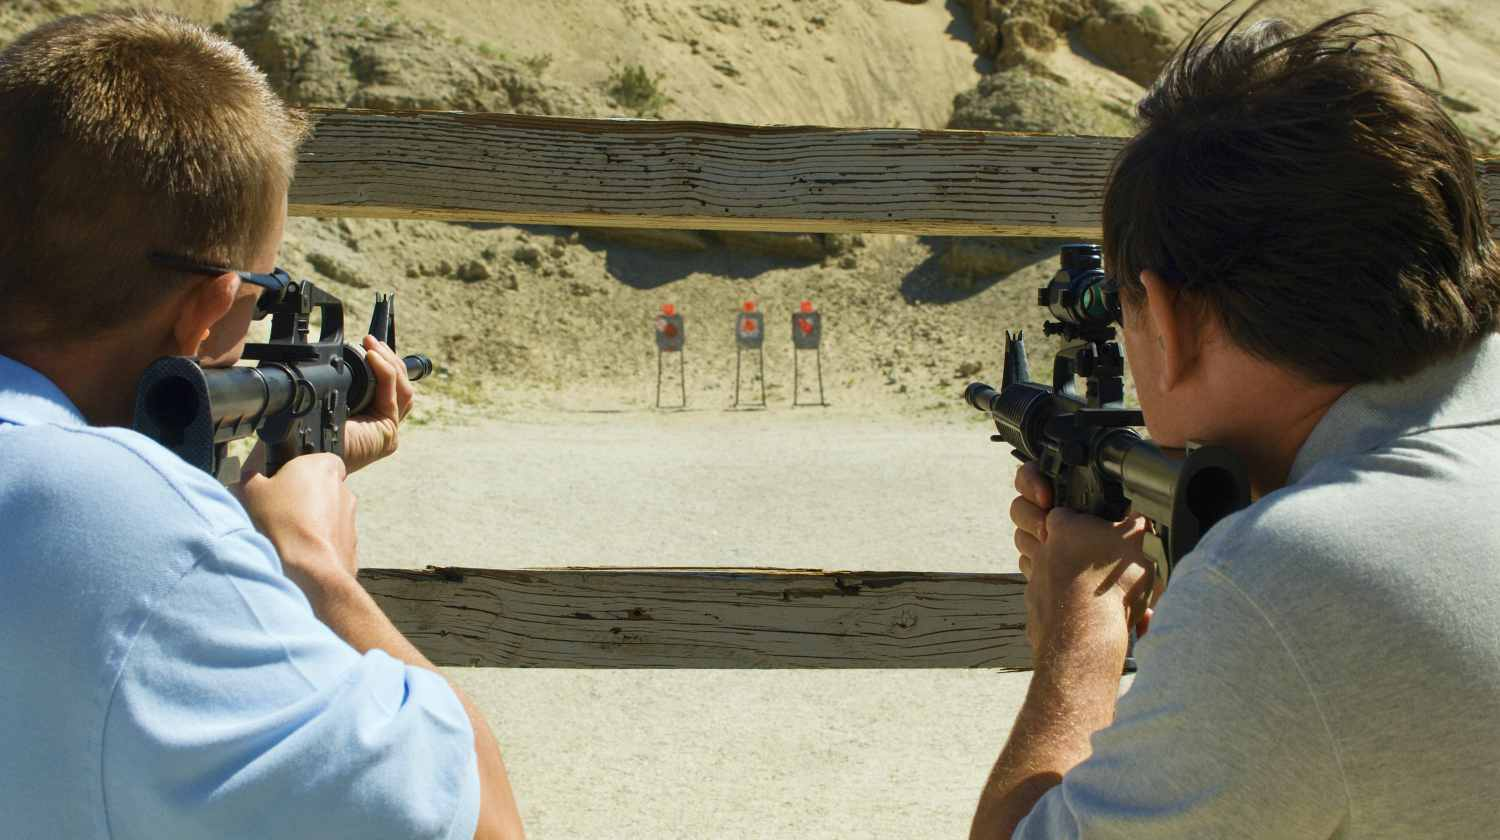 Rifle Shooting Tips | 11 Surprising Things New Shooters Need To Know